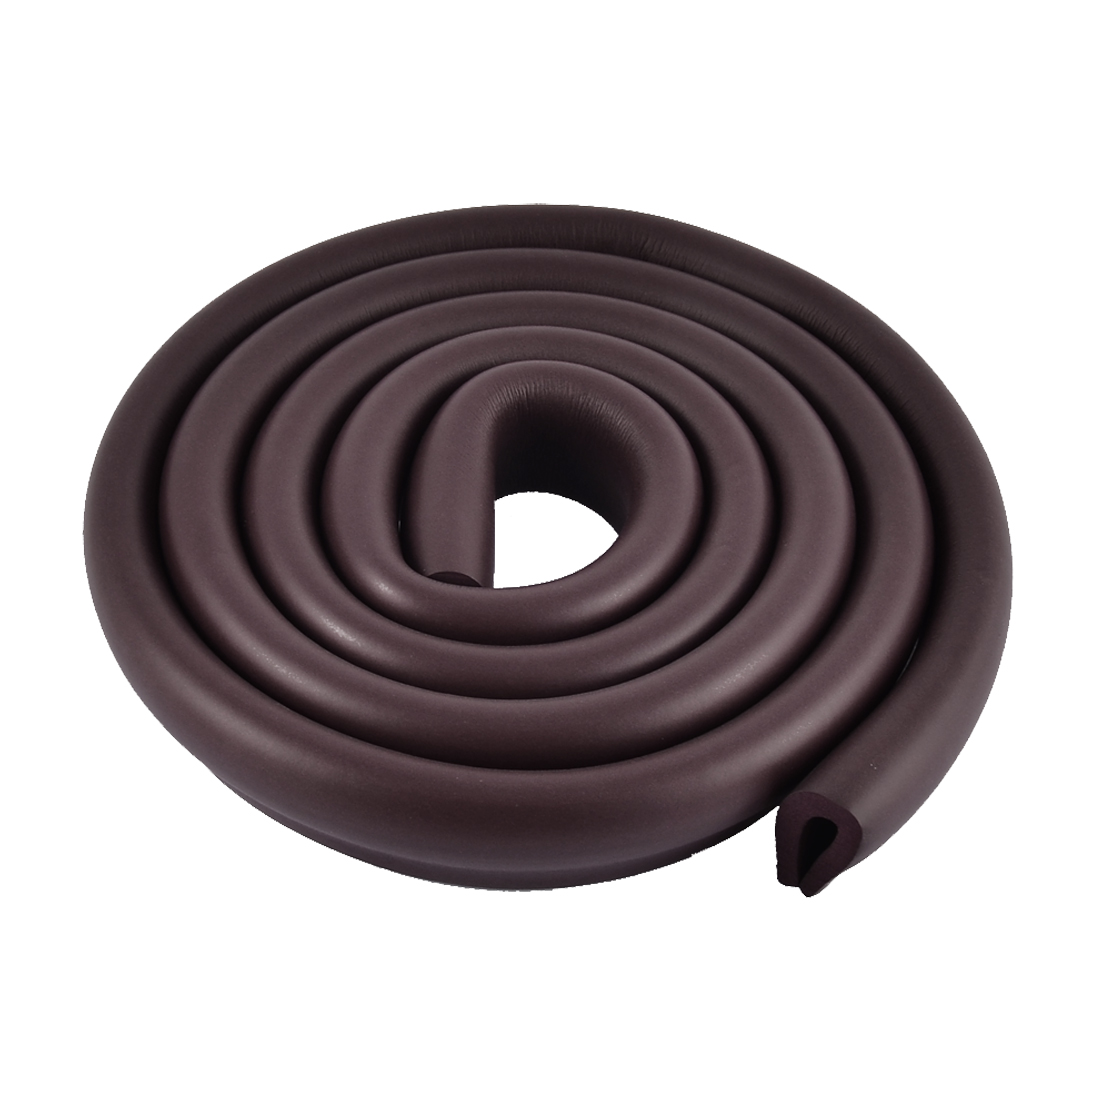 Table Corner Edge Softener Safety Protection Cushion Guard 35mm x 8mm Dark Brown